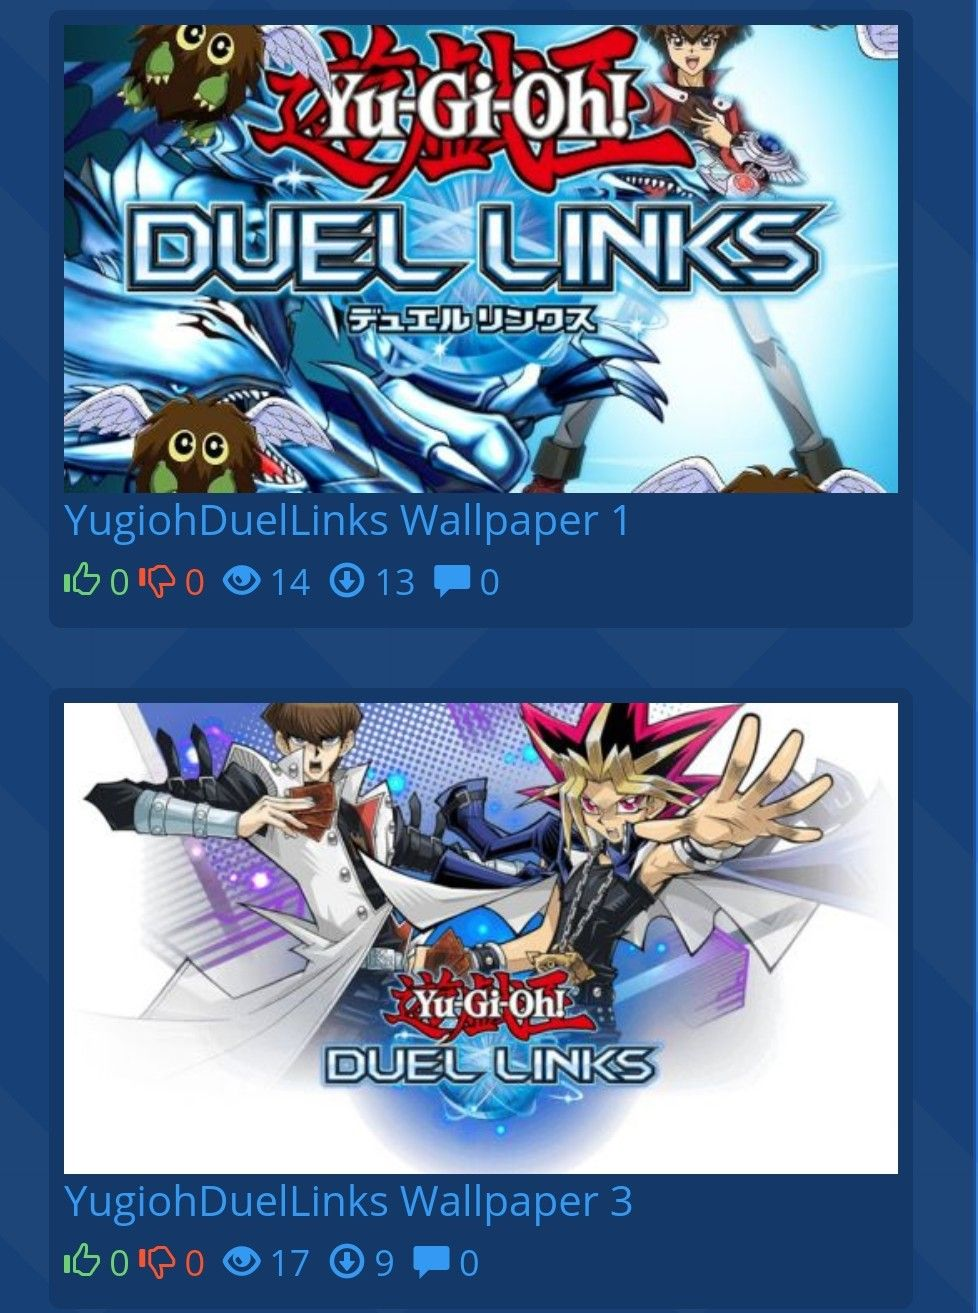 Free yugioh duellink wallpapers download for android, iOS